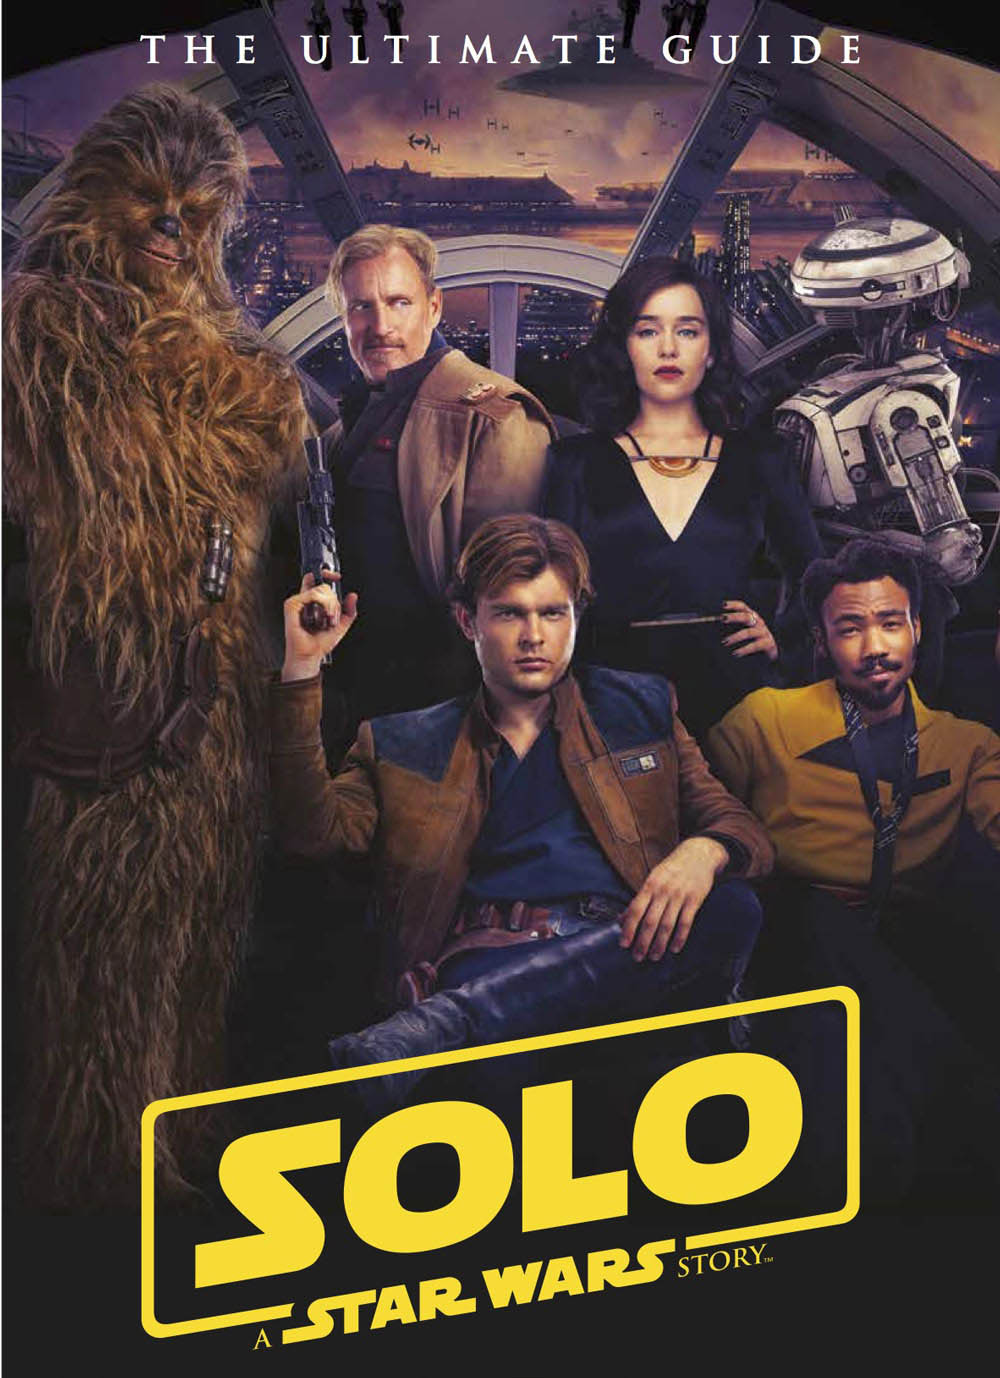 The cover of The Ultimate Guide to Solo: A Star Wars Story.